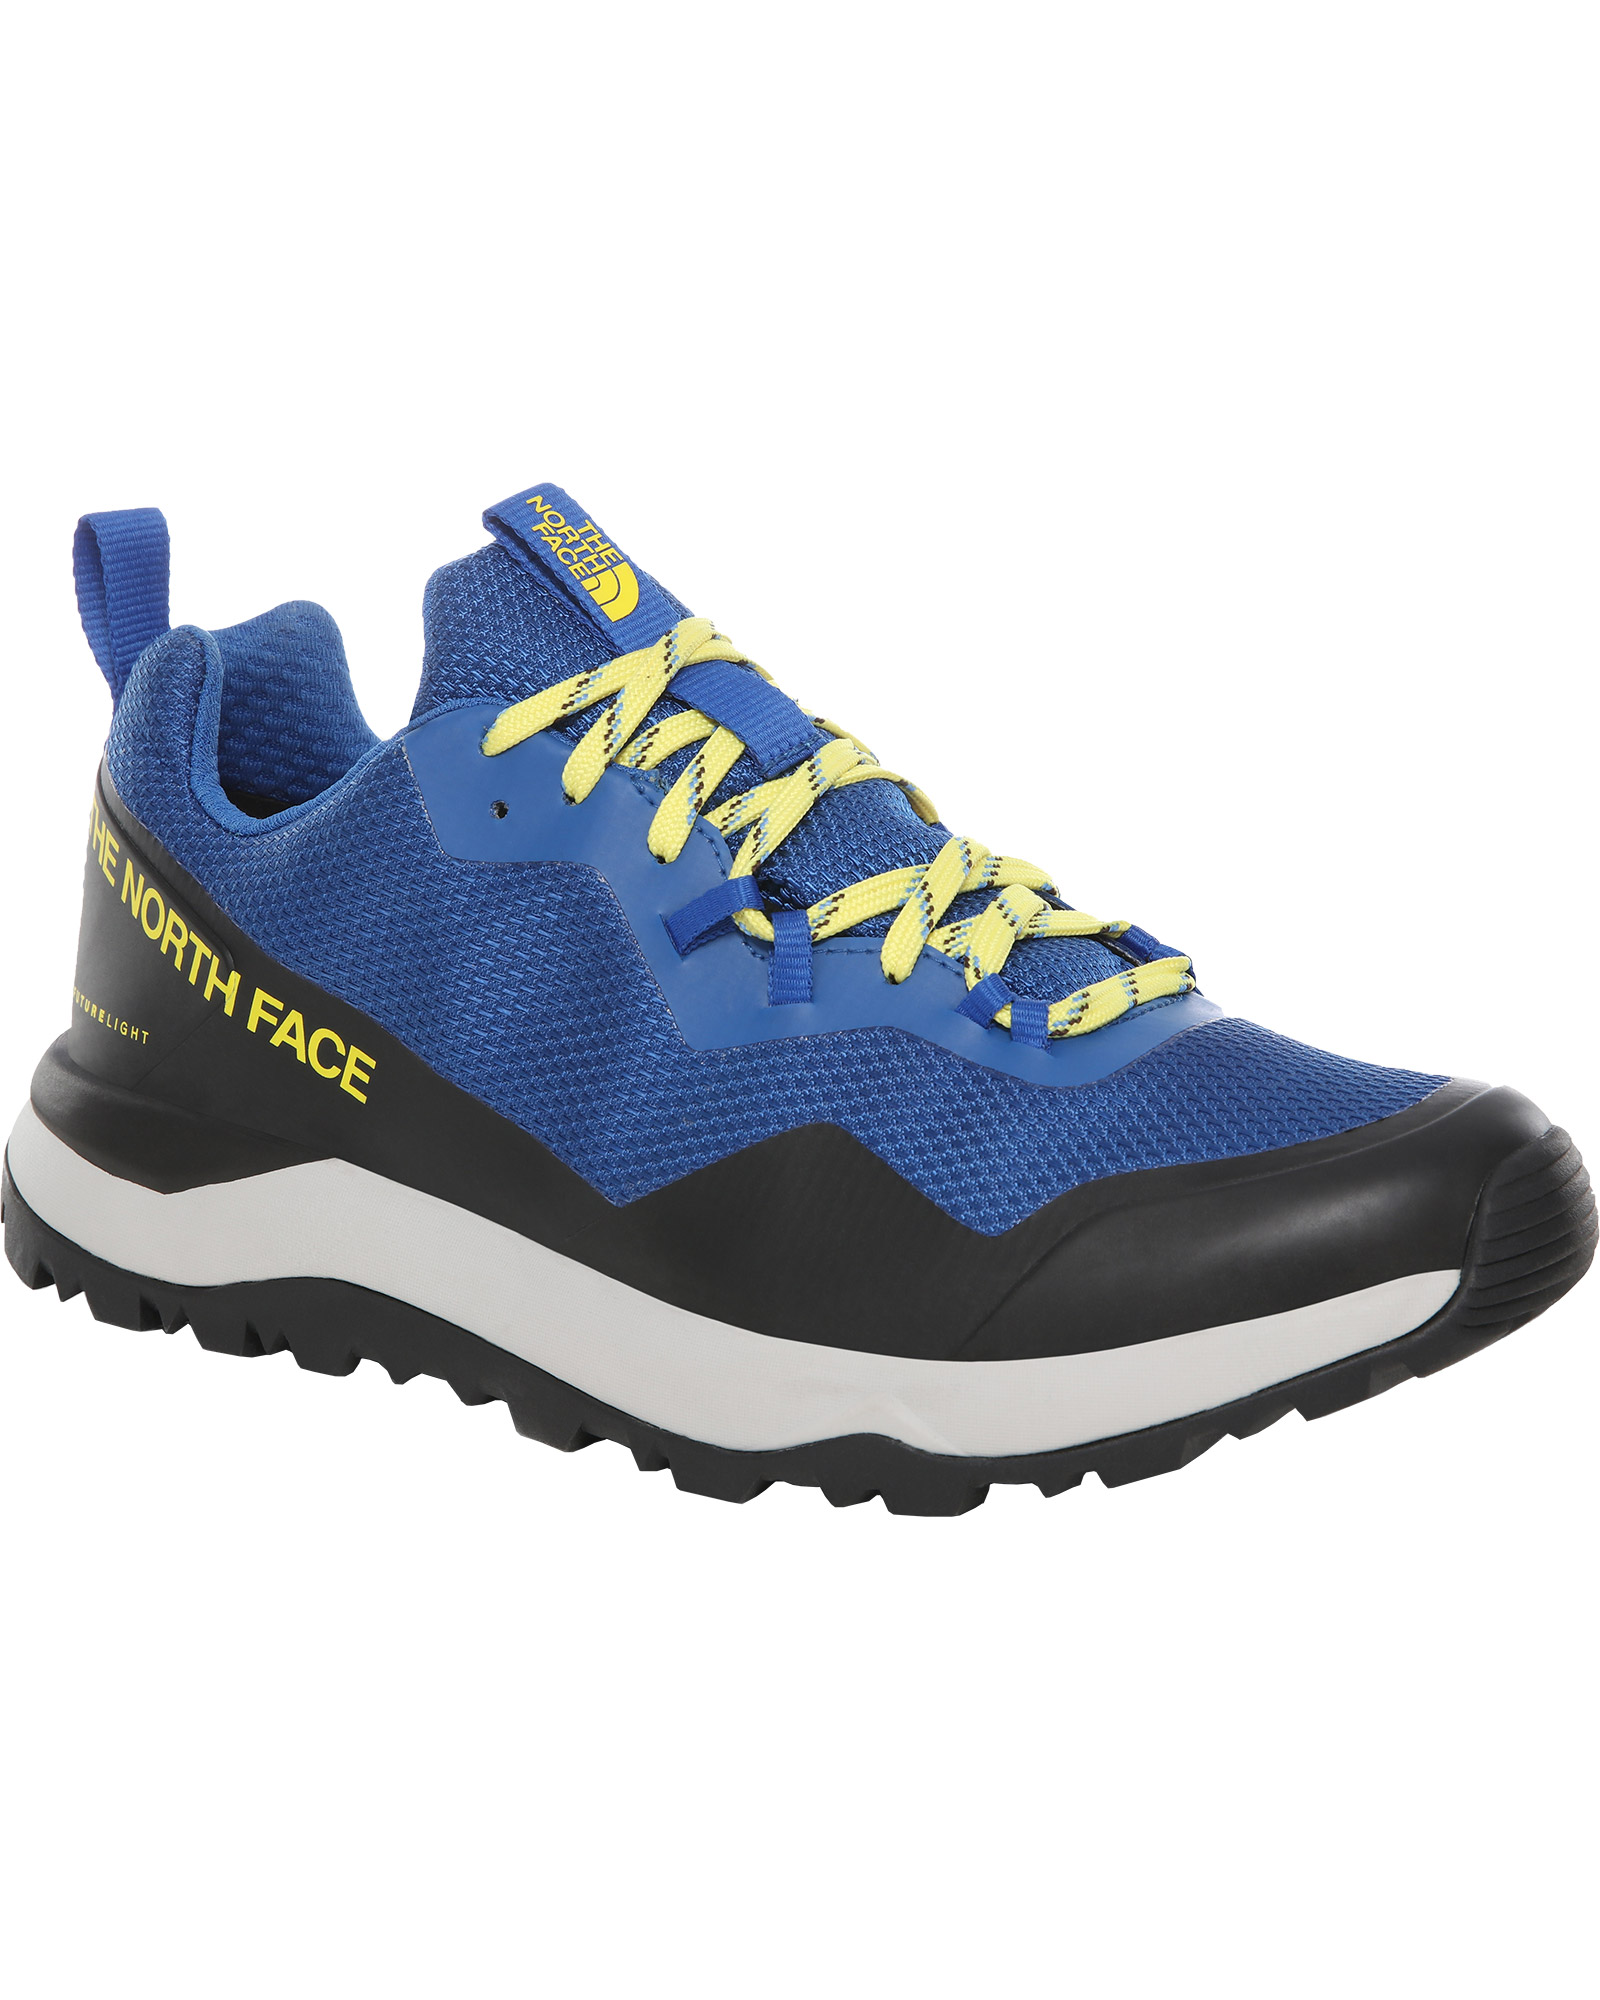 The North Face Men's Activist FUTURELIGHT Walking Shoes Nautical Blue/TNF Black 0